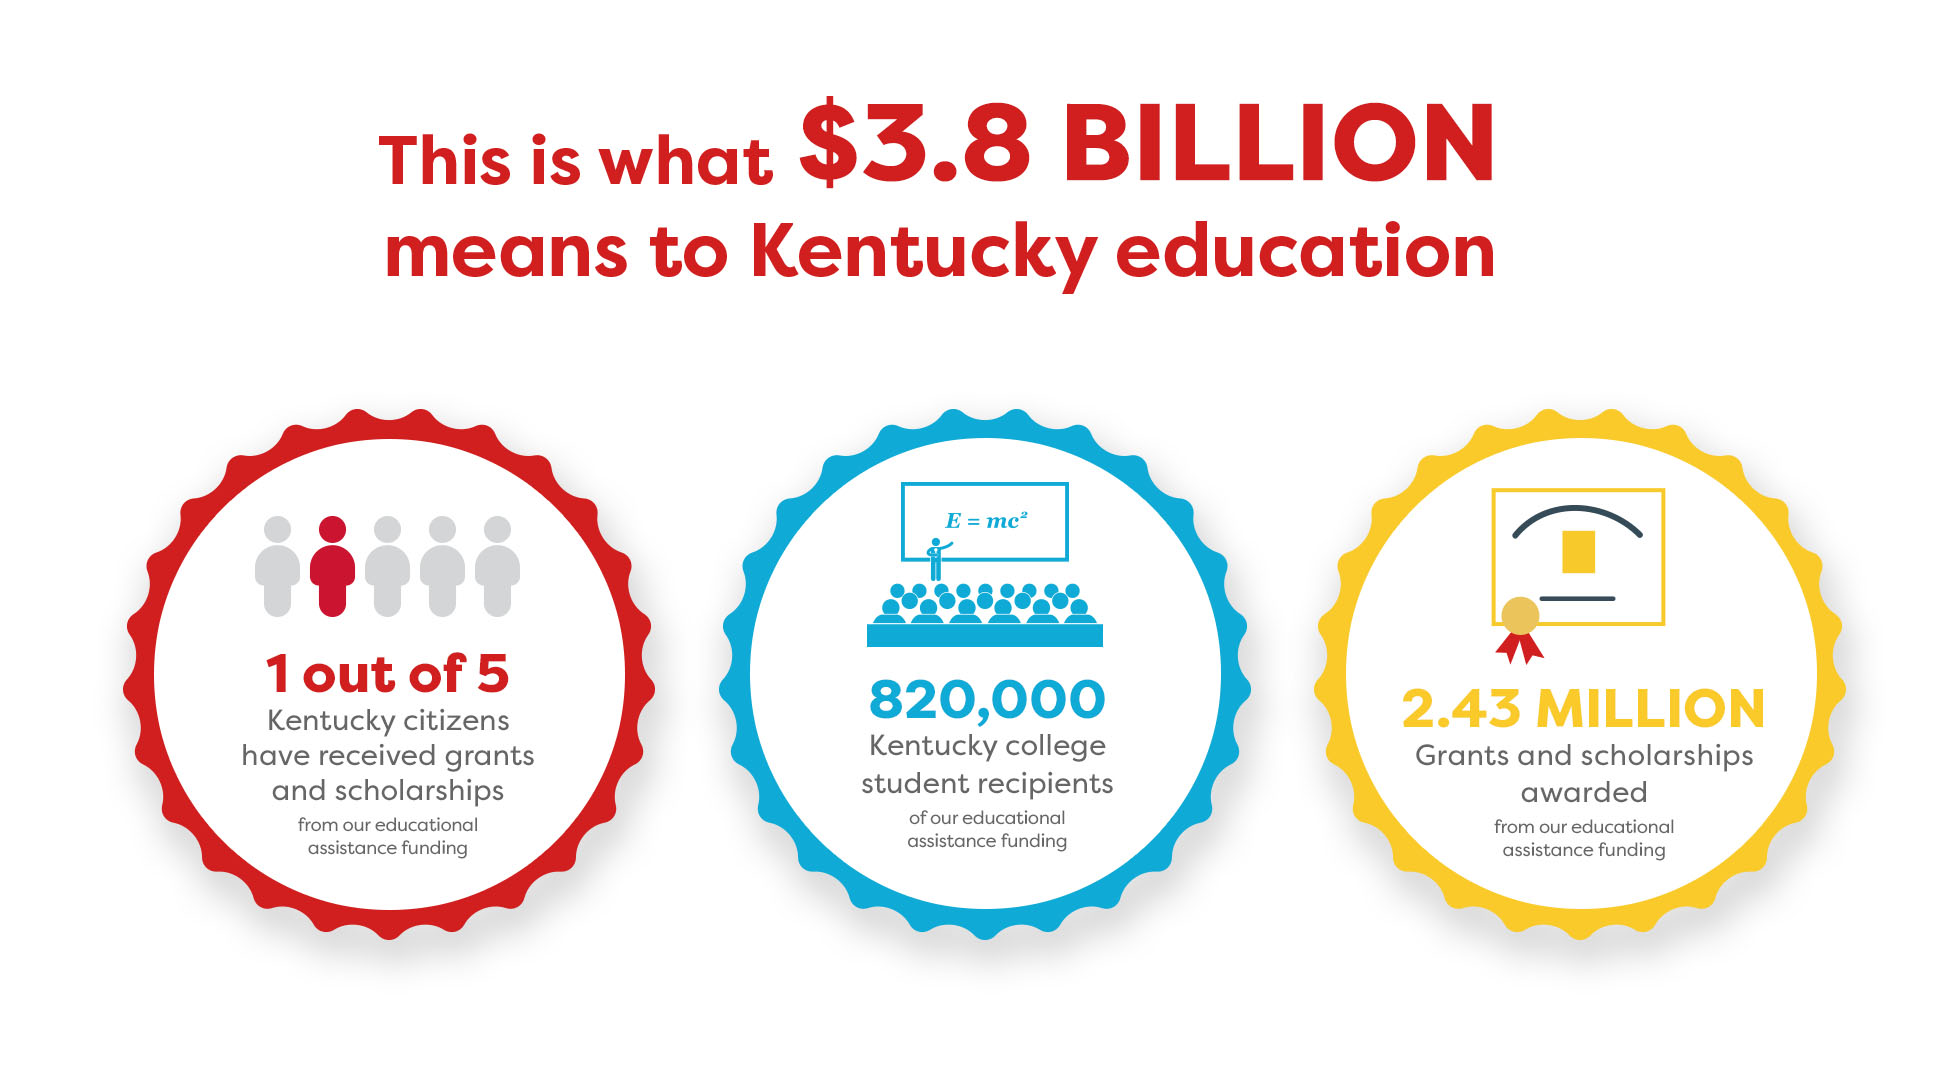 This is what $3.6 Billion means 1 out of 5 KY citizens received grants and scholarships, 860,000 KY college recipients, 2.59 Million grants and scholarships awarded